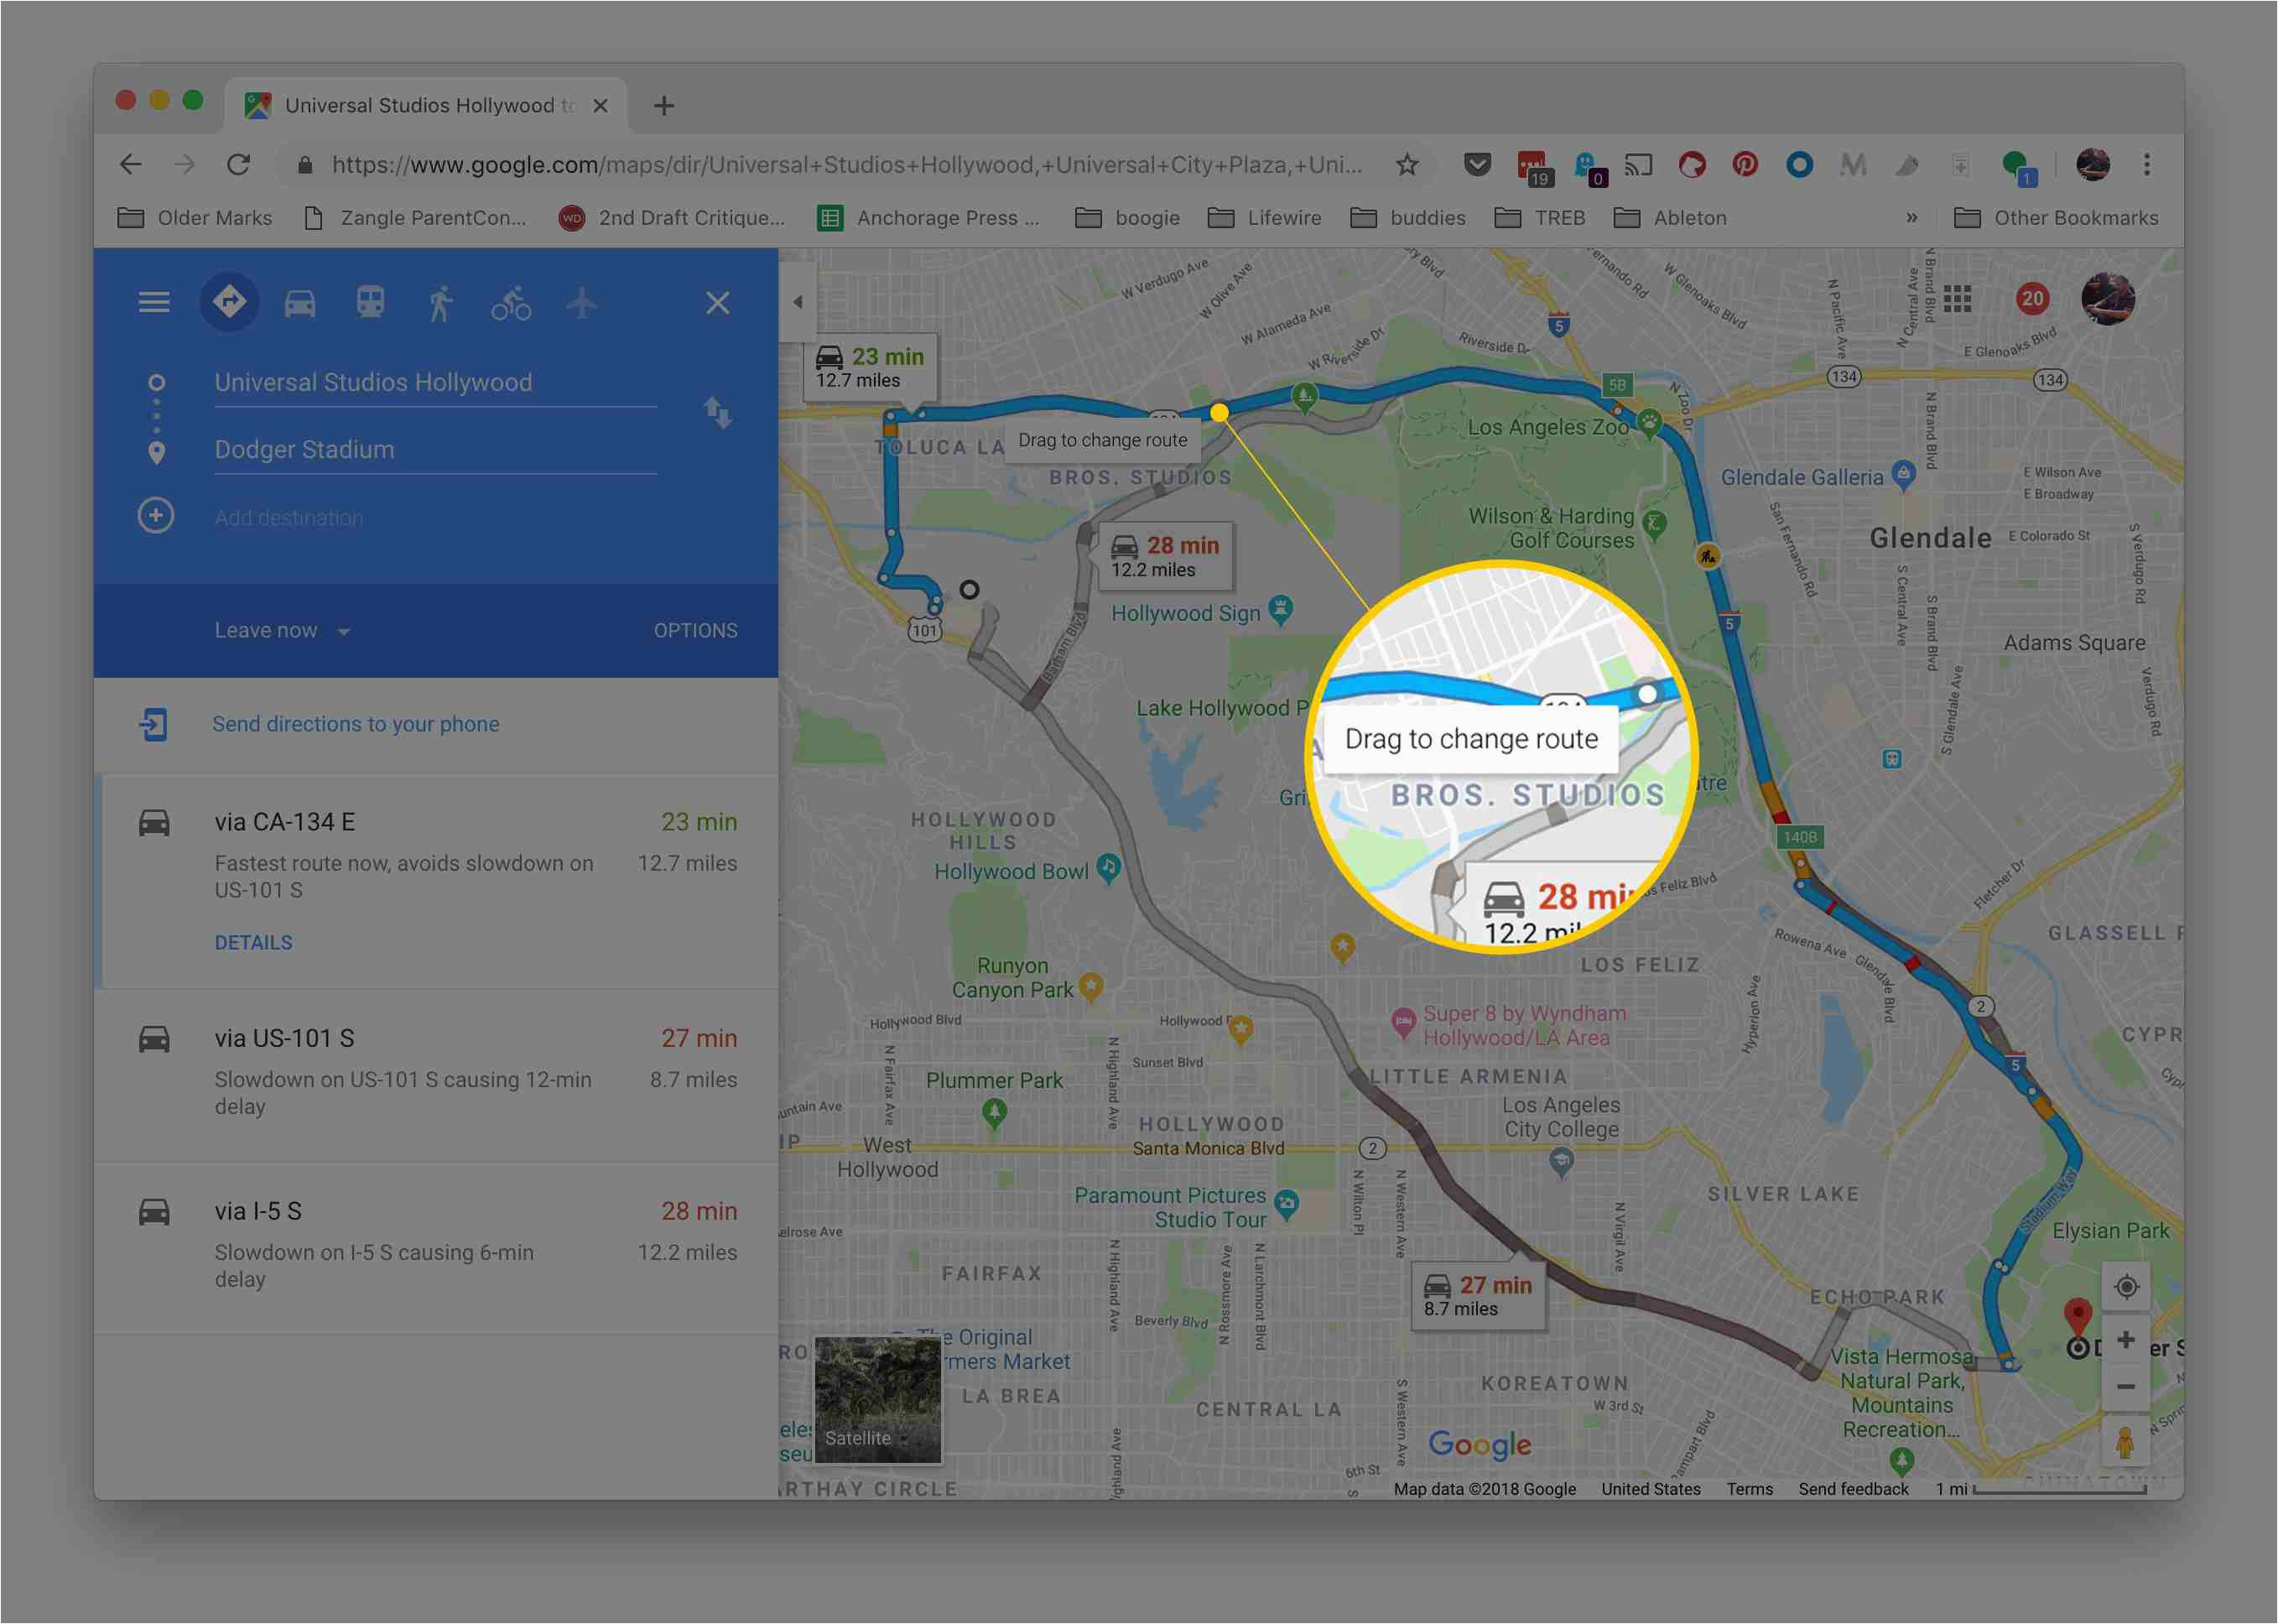 Google Map Driving Directions Canada How to Plan An ... on cache creek map directions, maine map directions, car map directions, africa map directions, amazon rainforest map directions, edmonton map directions, california map directions,